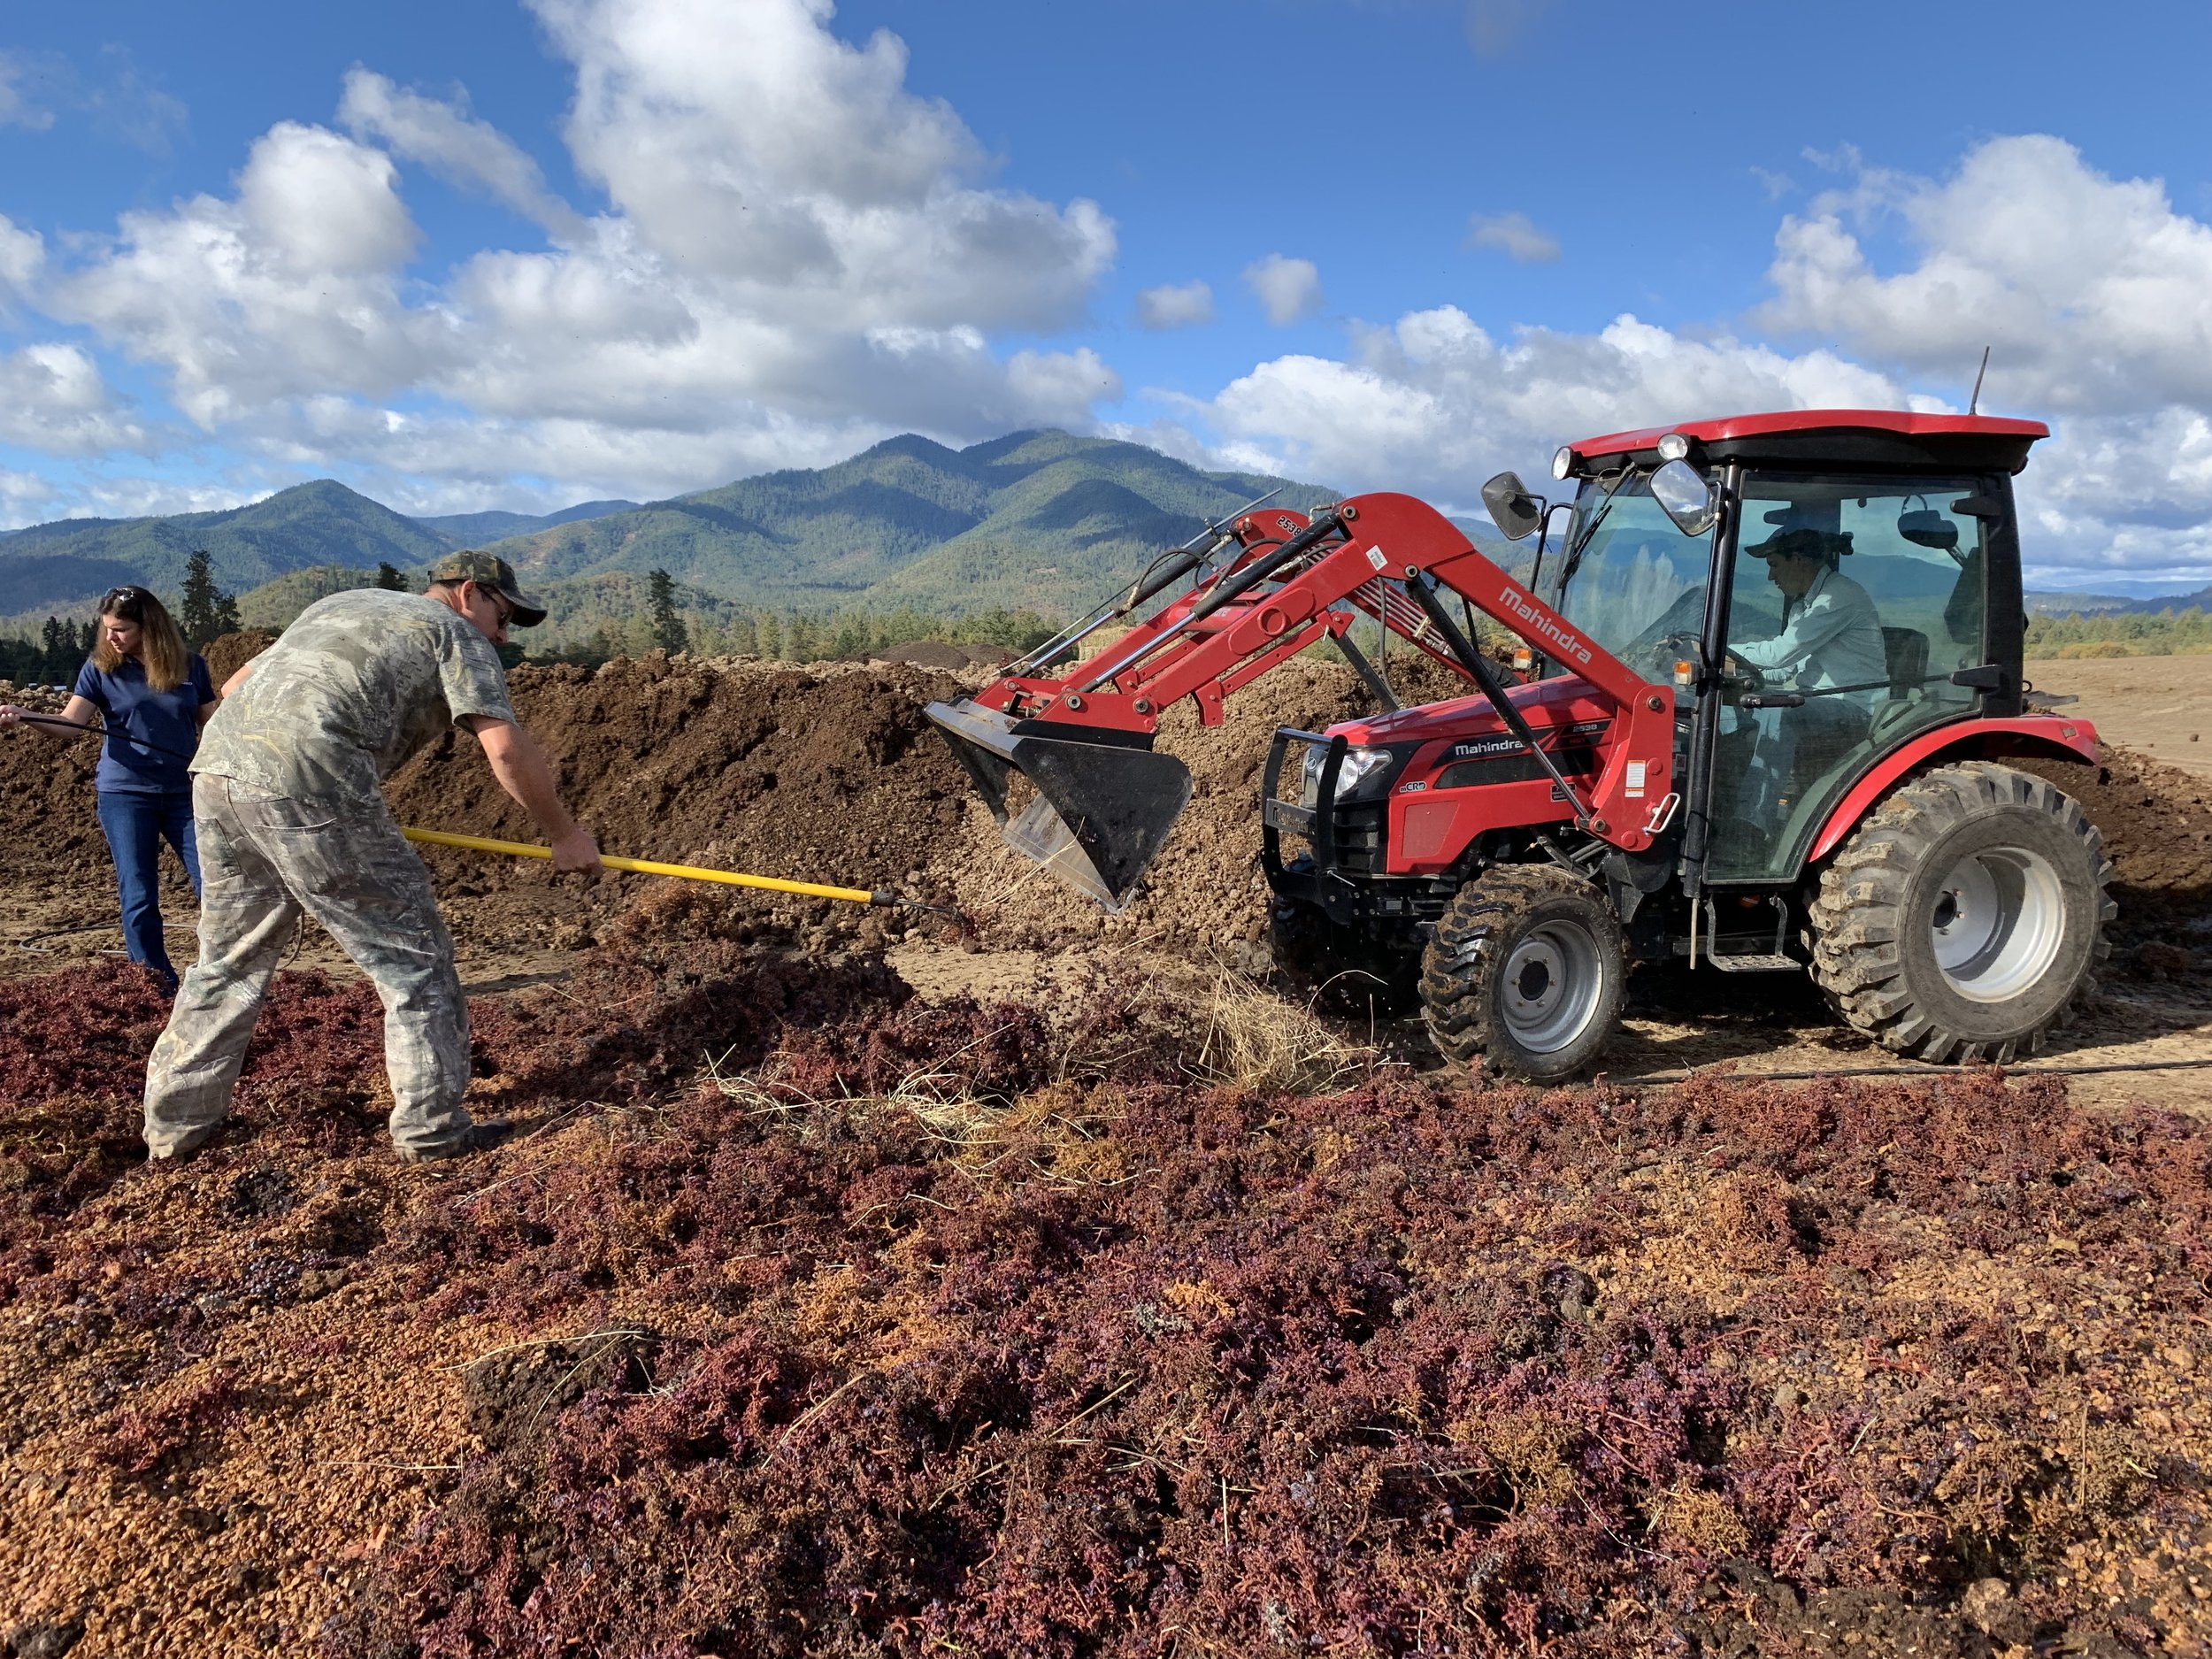 Making Biodynamic compost with our grape skins and stems after pressing during harvest